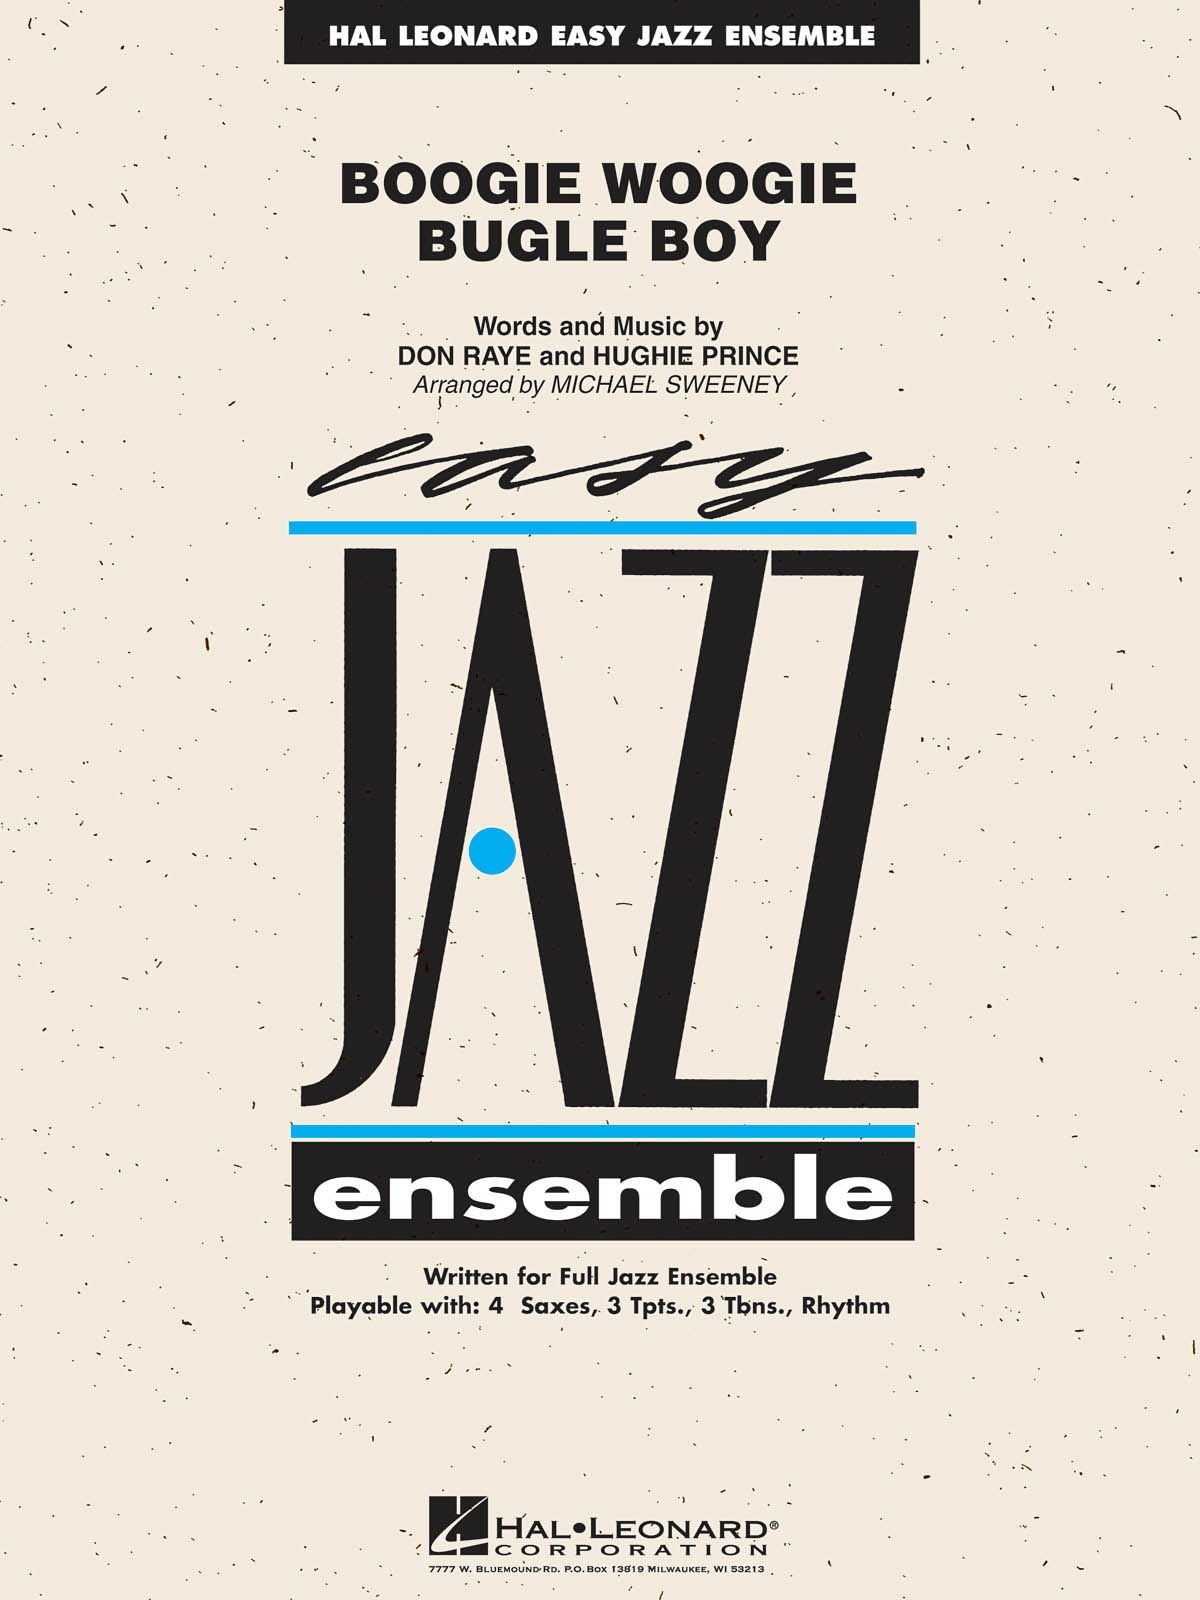 Boogie Woogie Bugle Boy: Easy Jazz Ensemble